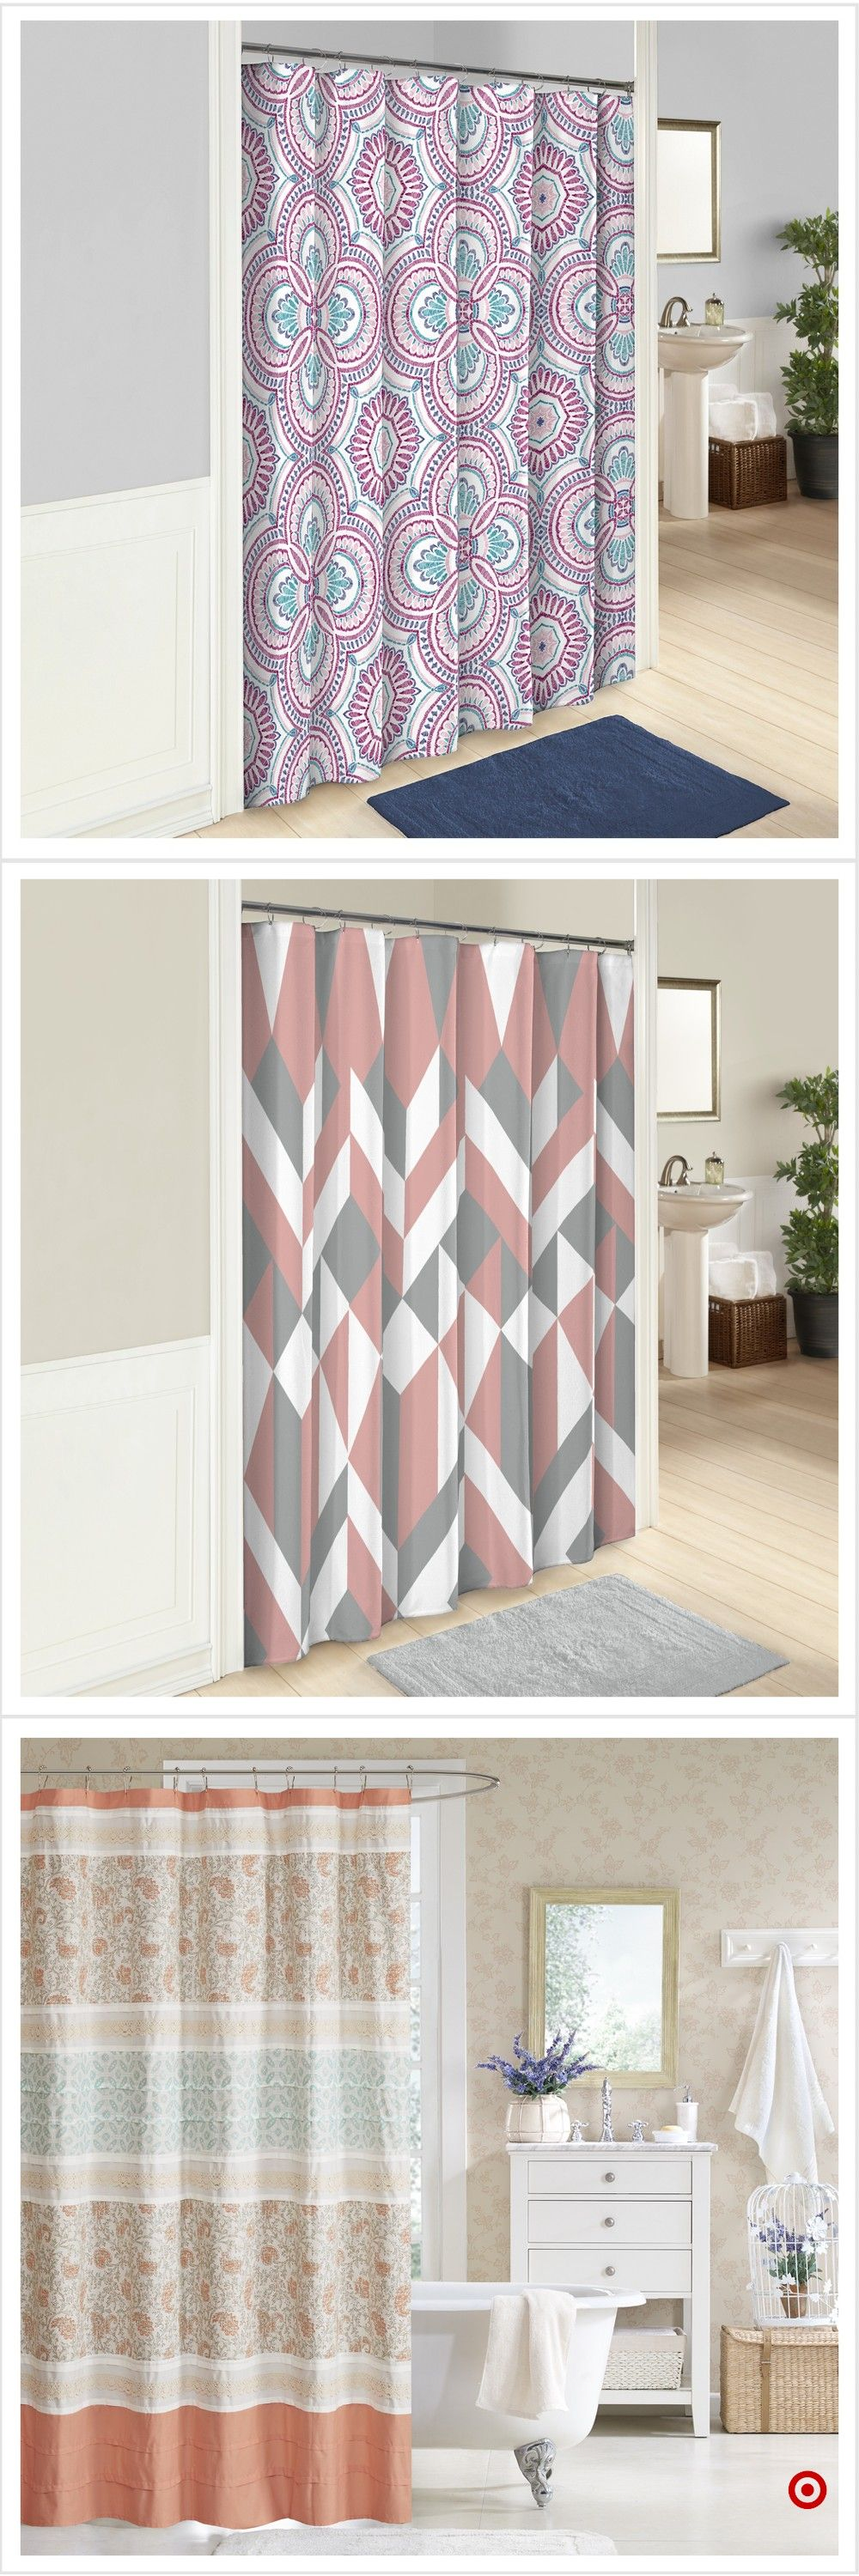 Shop Tar for shower curtains you will love at great low prices